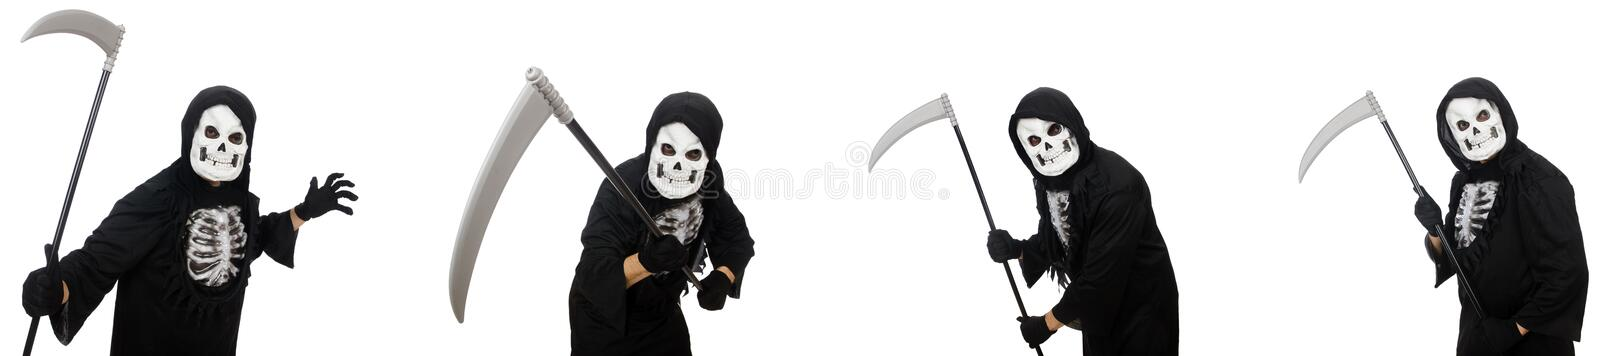 The scary monster with scythe isolated on white vector illustration